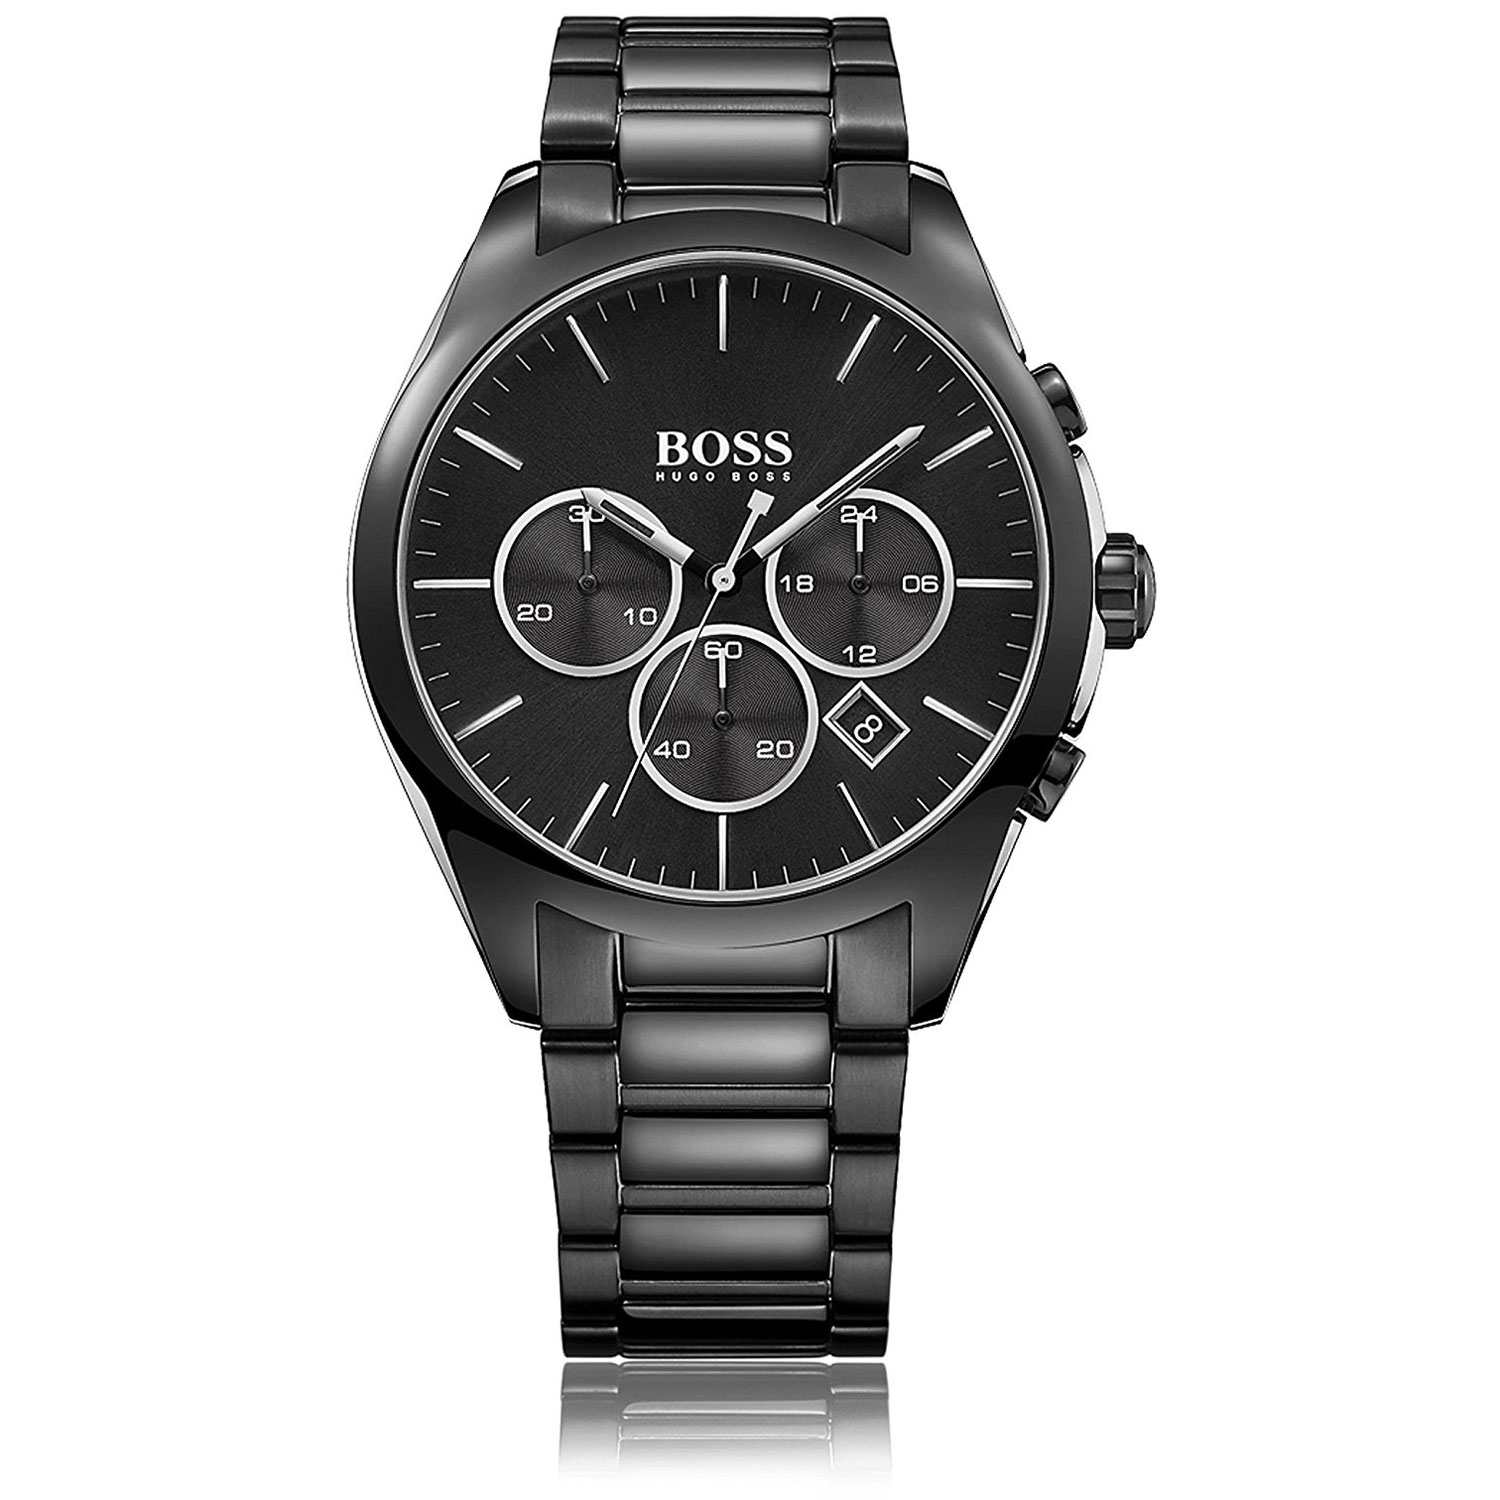 Good Watch Brands For Men >> Hugo Boss Watch with black stainless steel 1513365